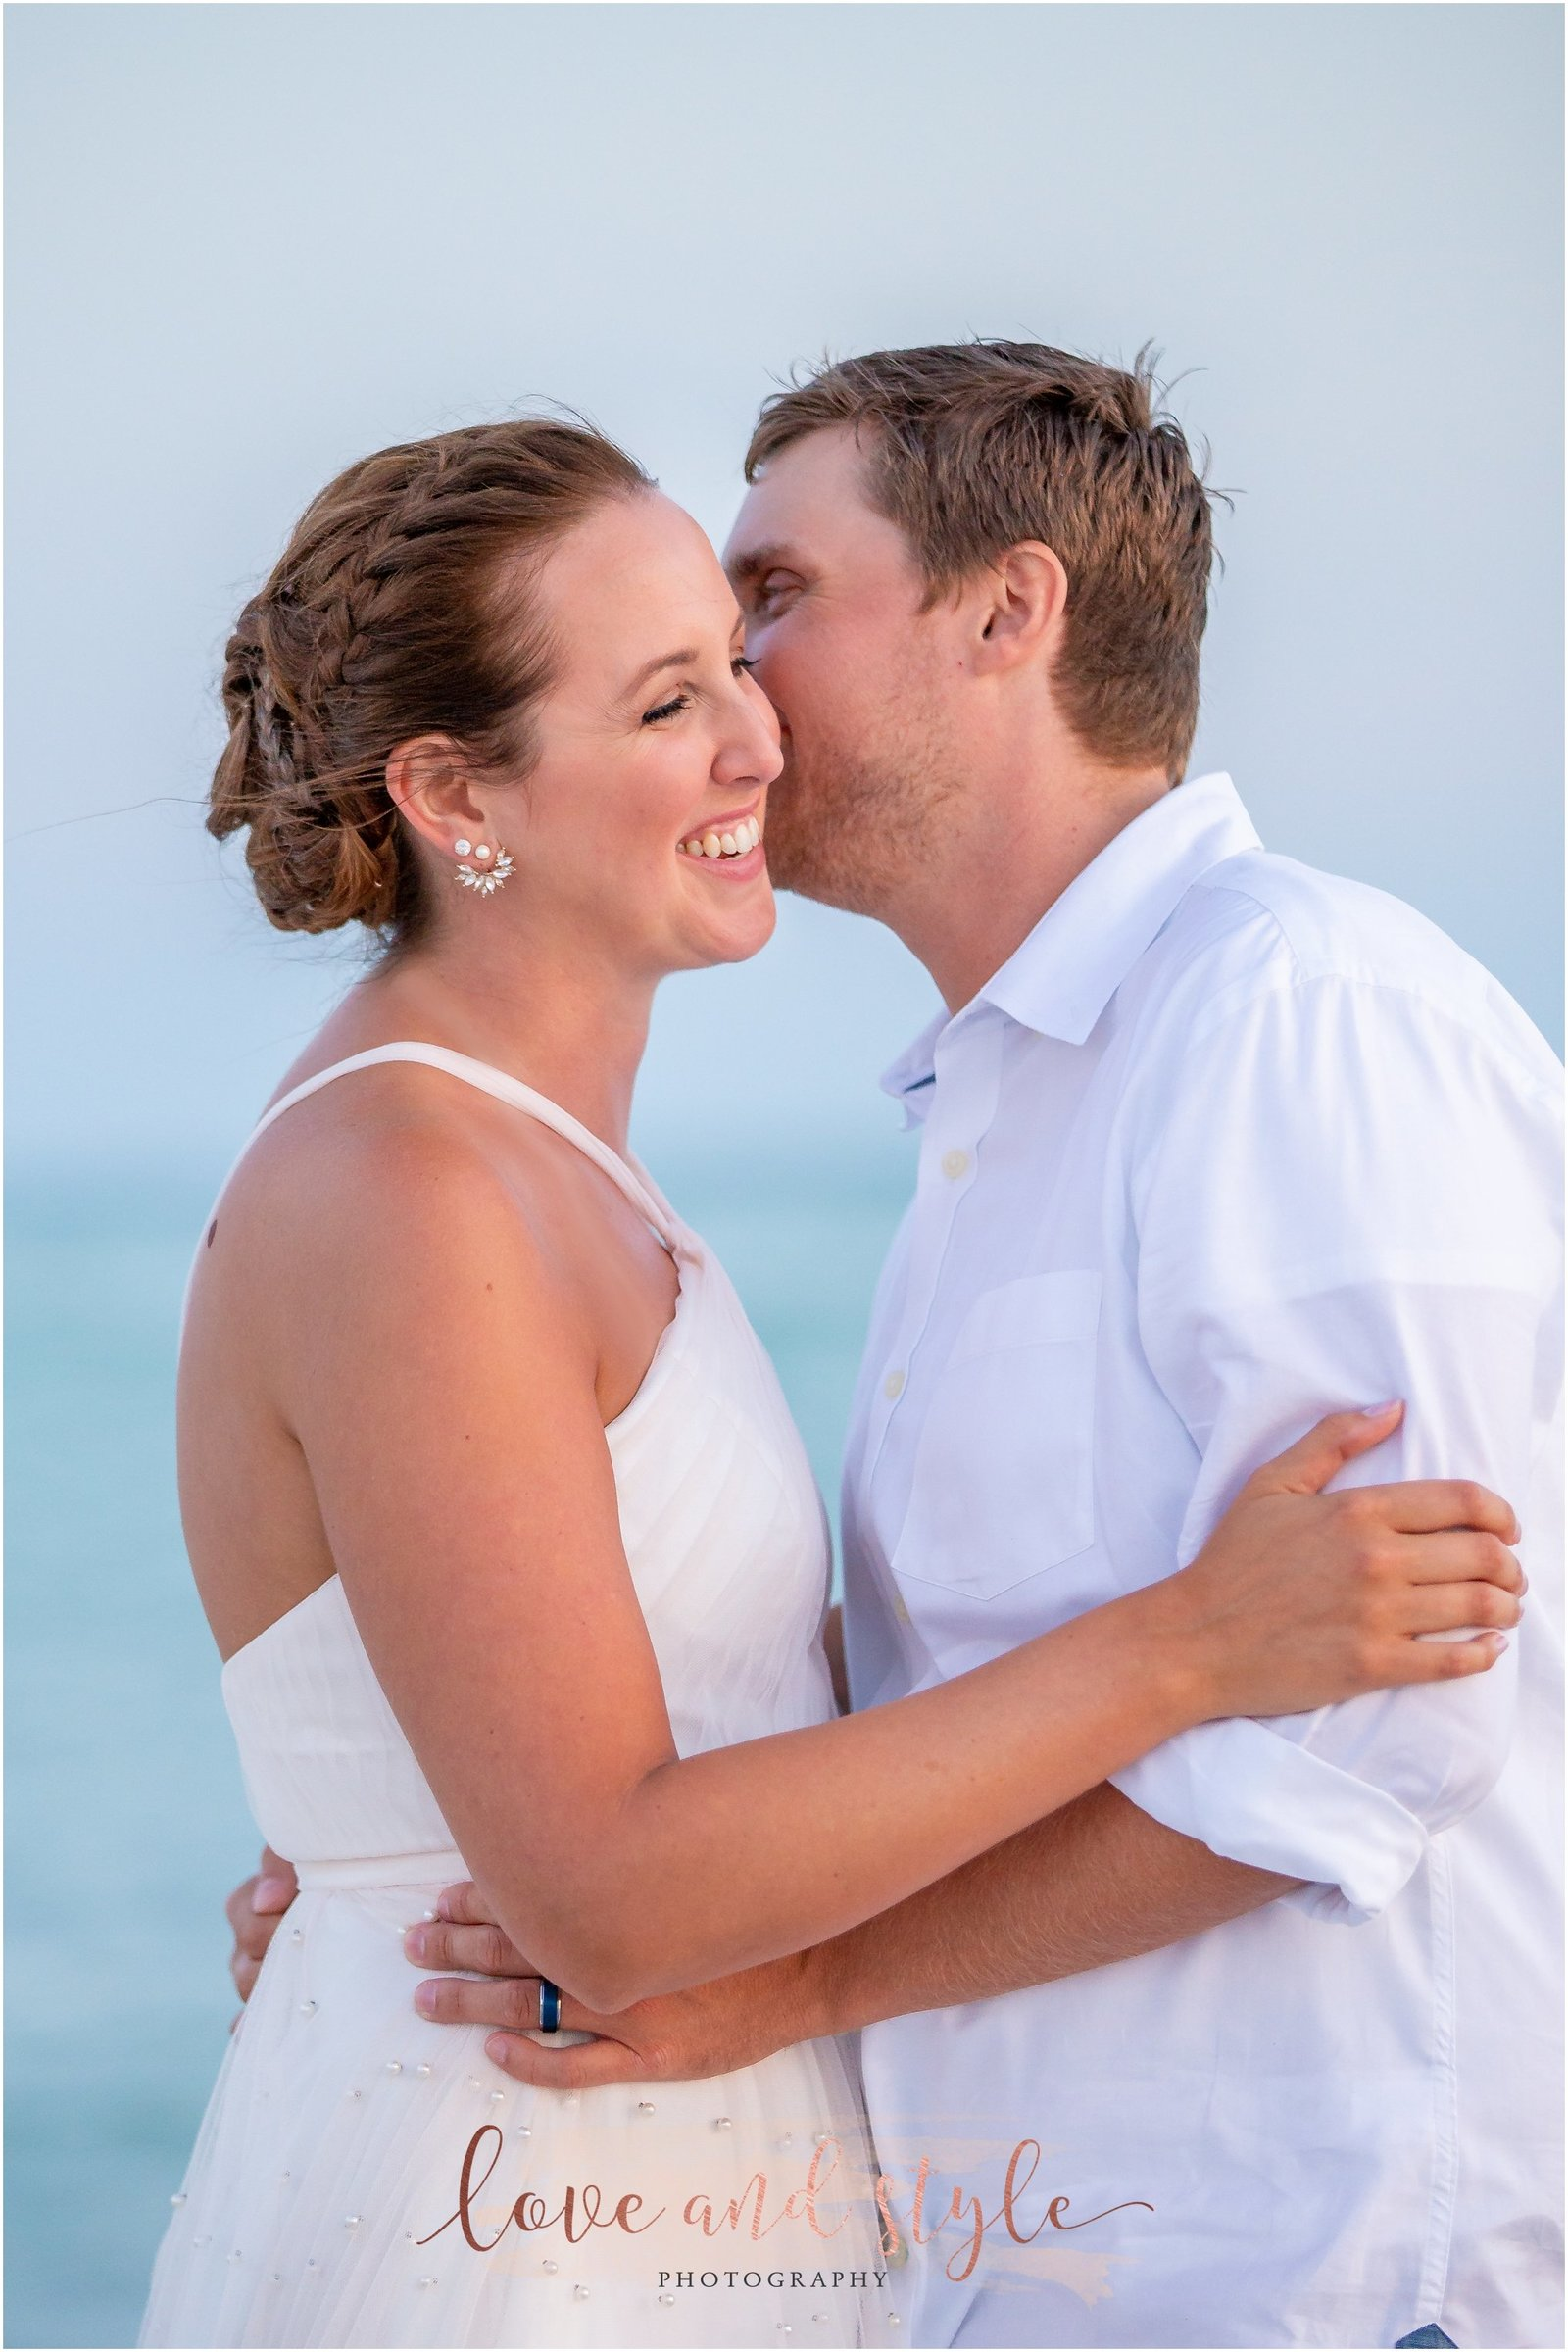 Lido Beach Wedding Photography of bride and groom laughing together on the beach